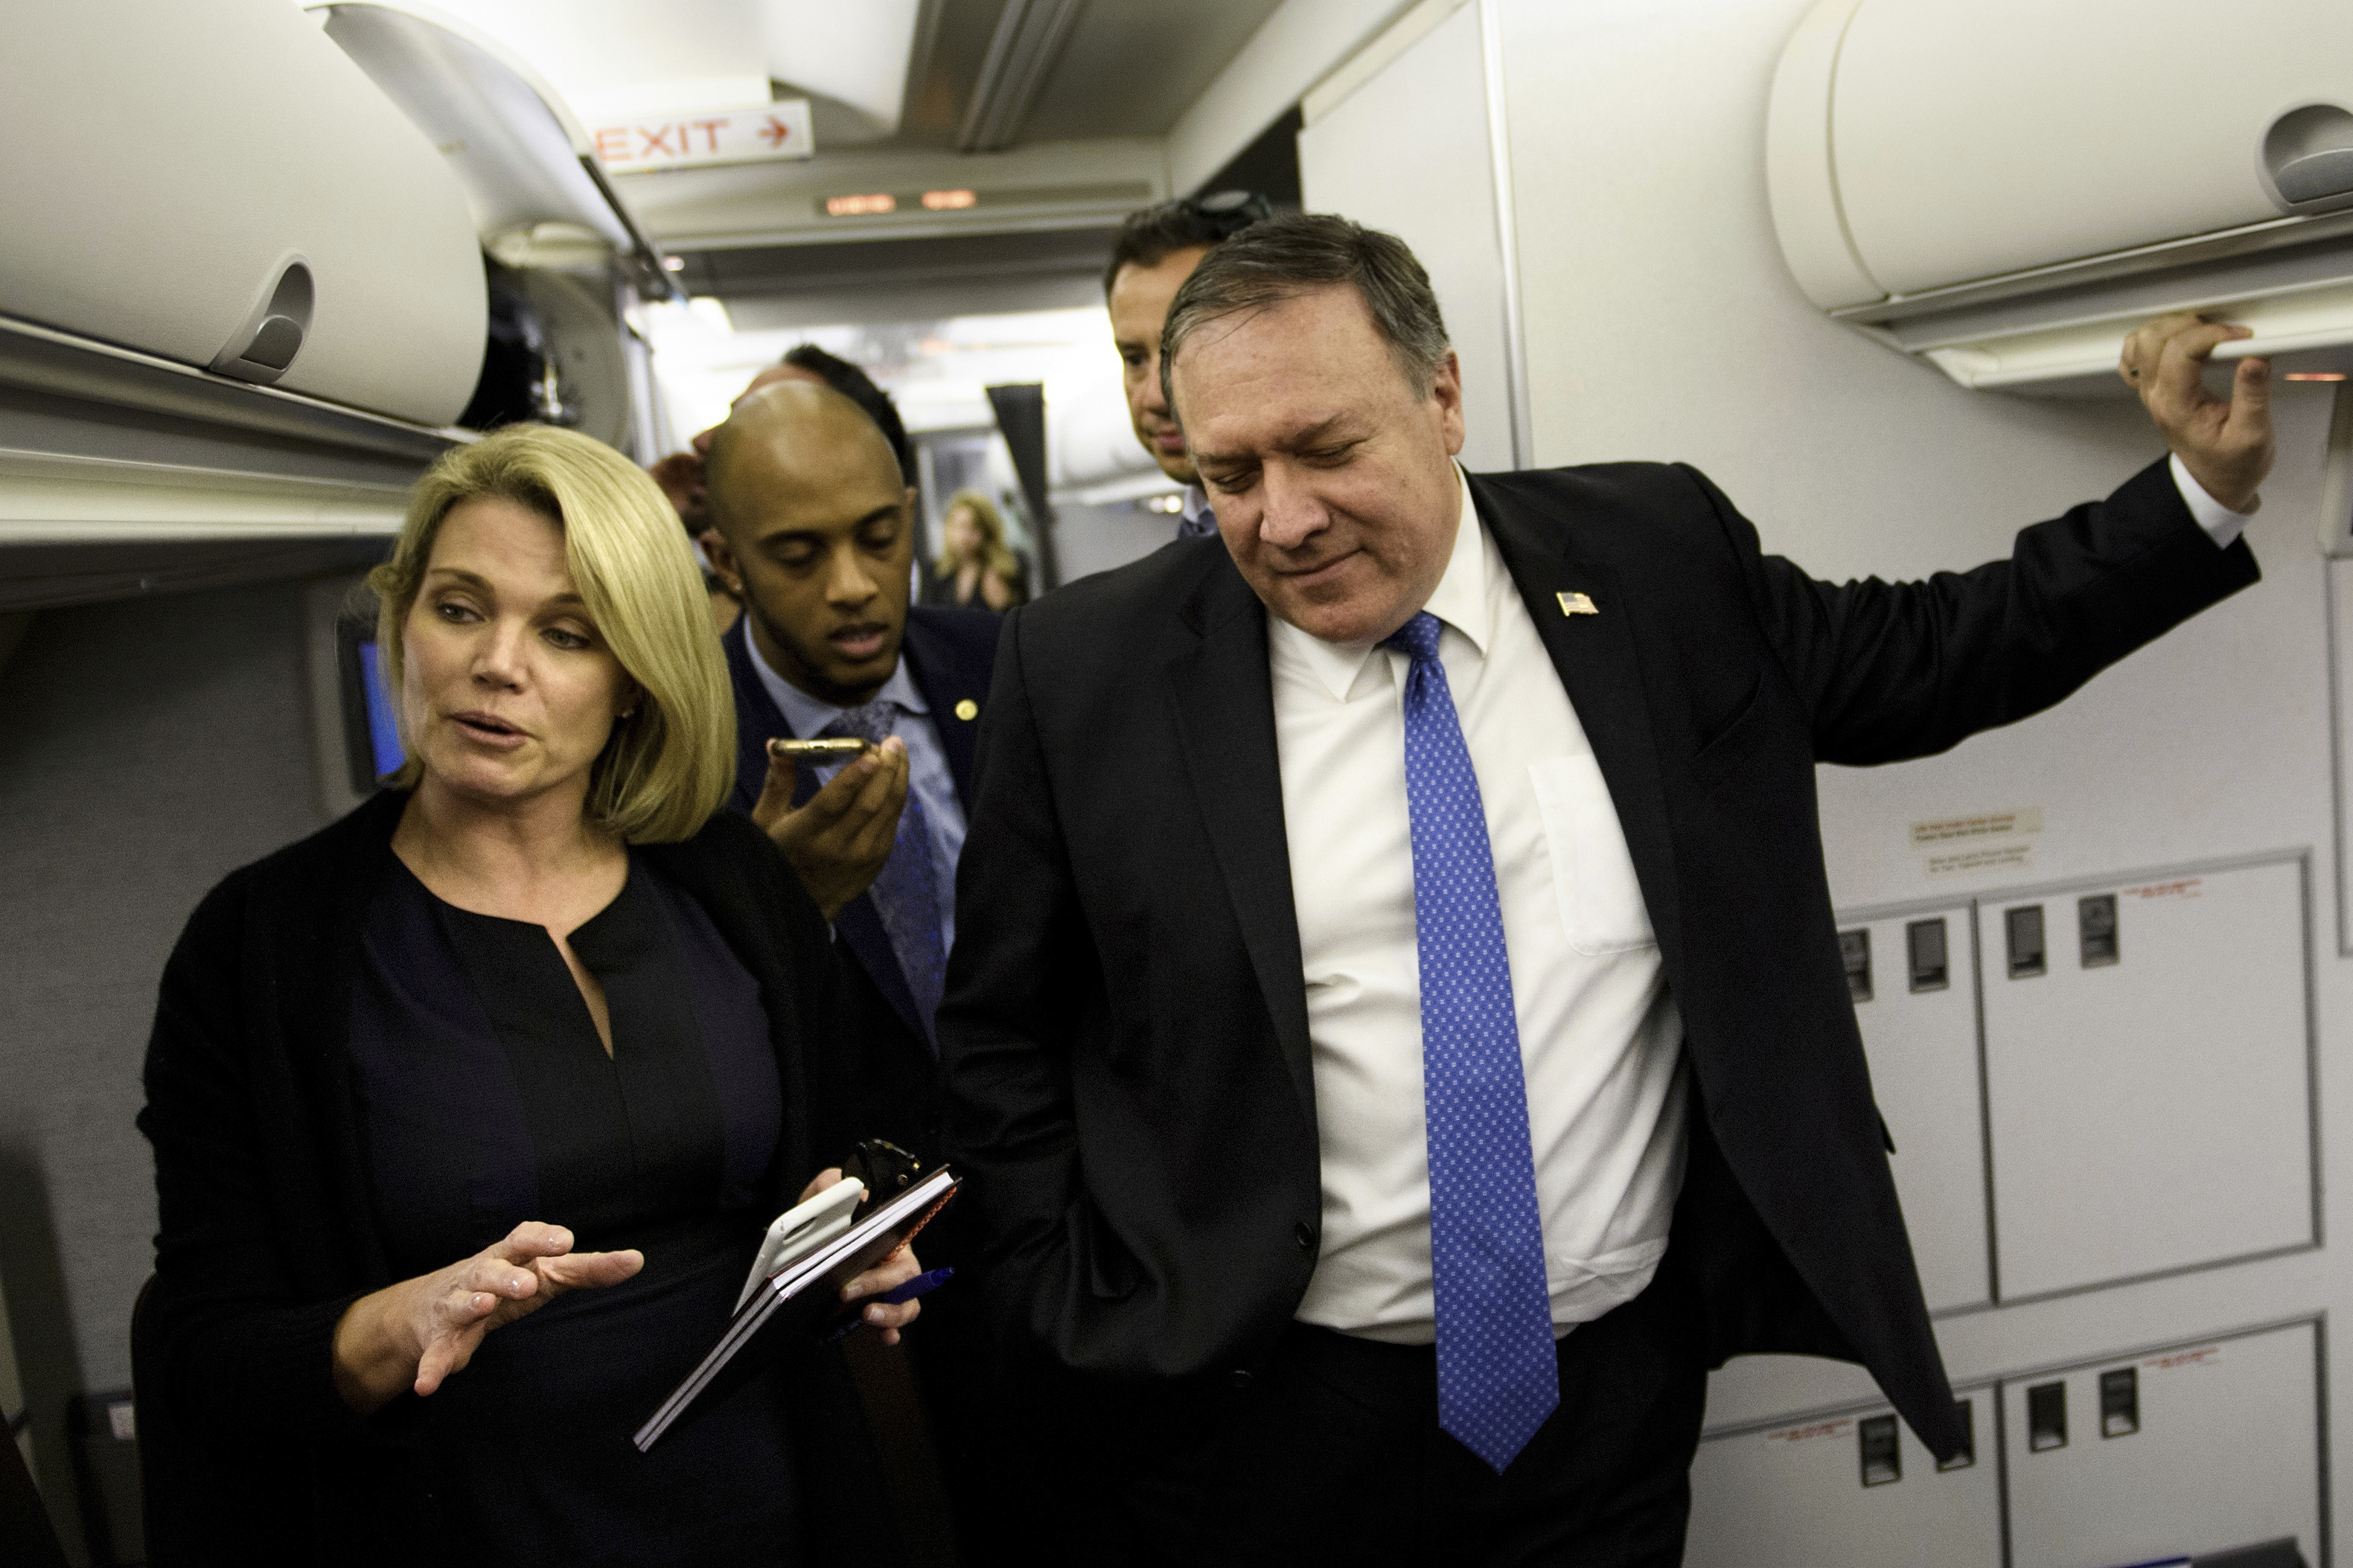 FILE - State Deptartment spokesperson Heather Nauert, left, and Secretary of State Mike Pompeo speak with reporters in his plane while flying from Panama to Mexico, Oct. 18, 2018.